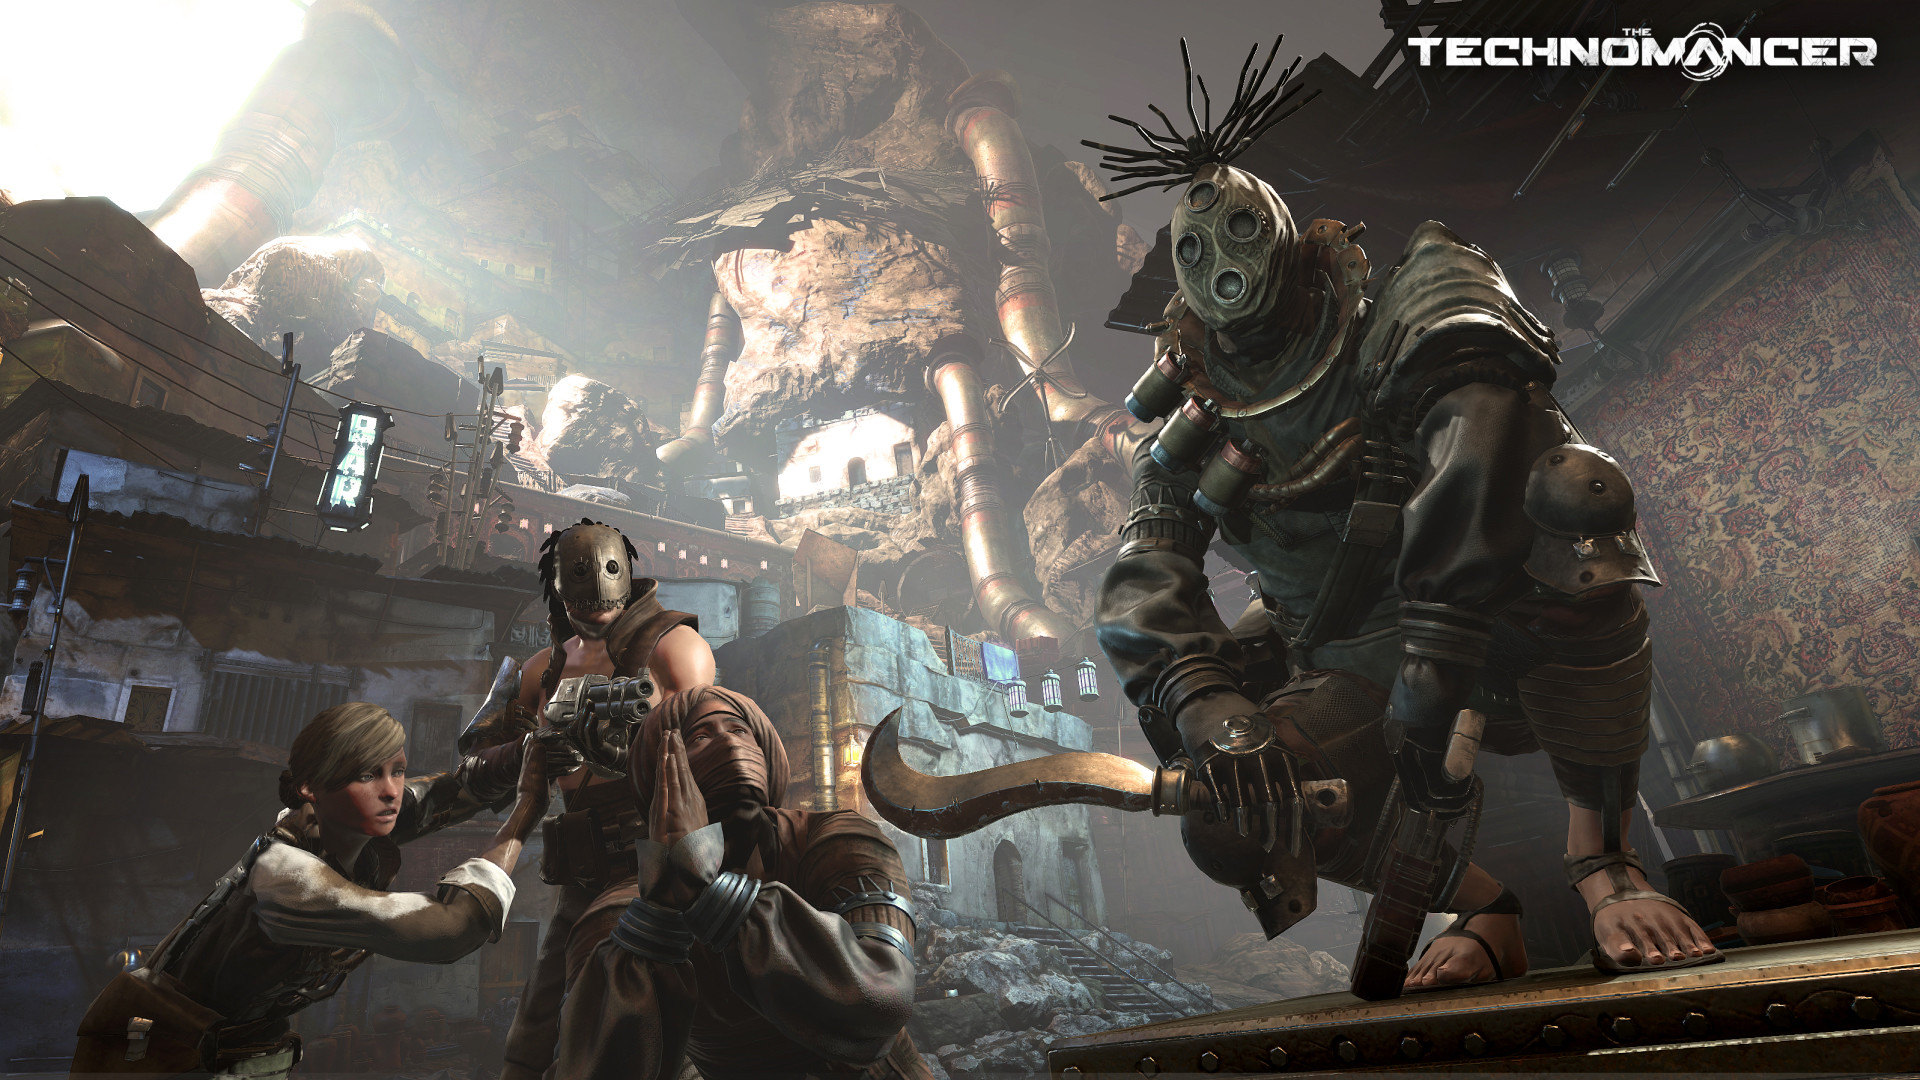 NEW – Bound by Flame Dev announces The Technomancer